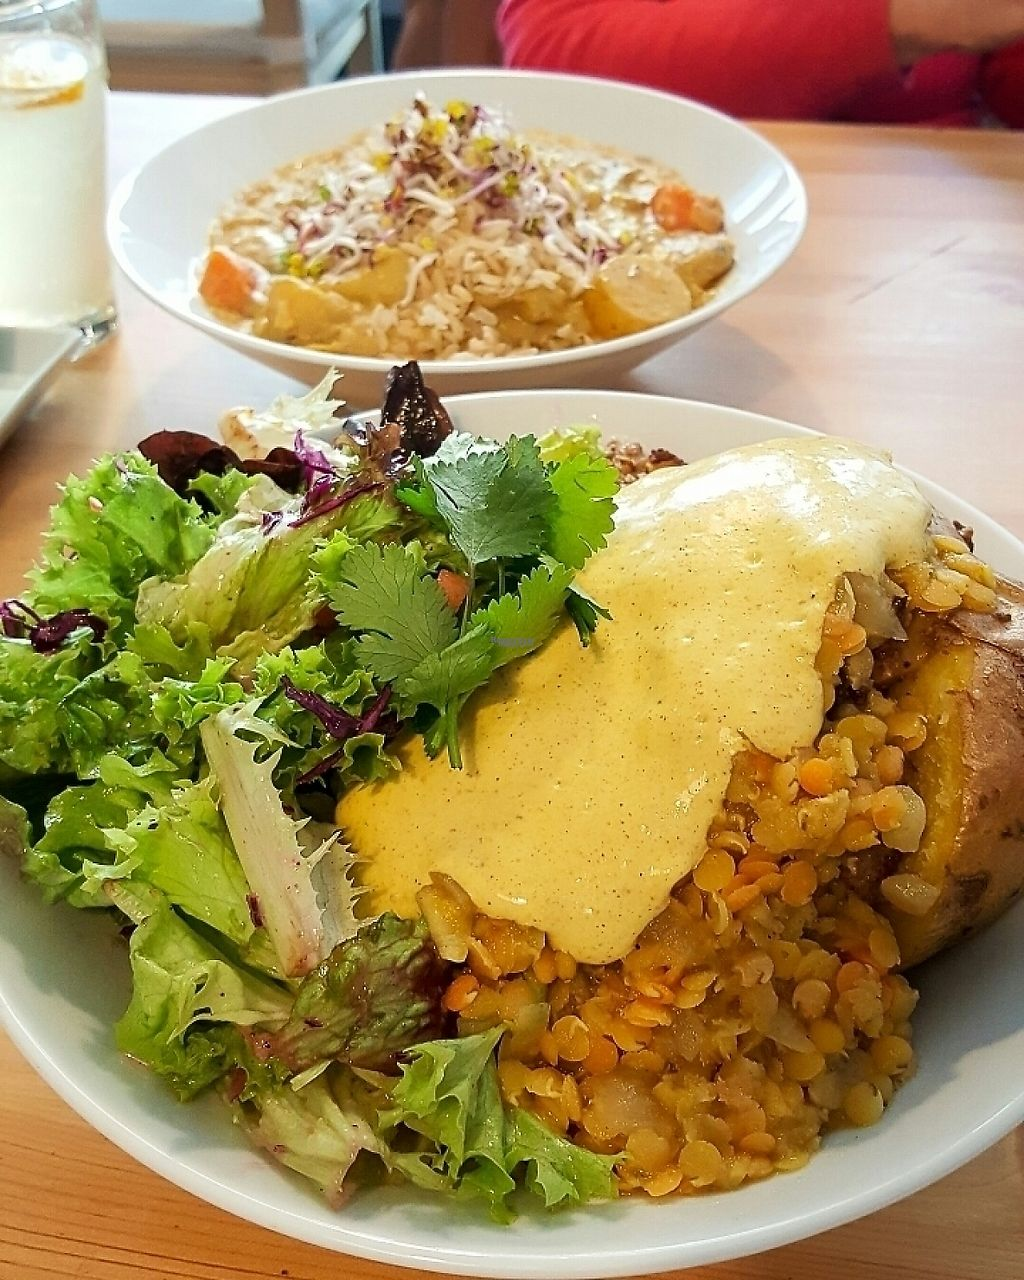 """Photo of HappenPappen  by <a href=""""/members/profile/veganverayo"""">veganverayo</a> <br/>Delicious Indian potatoe bowl  <br/> February 18, 2017  - <a href='/contact/abuse/image/41221/227958'>Report</a>"""